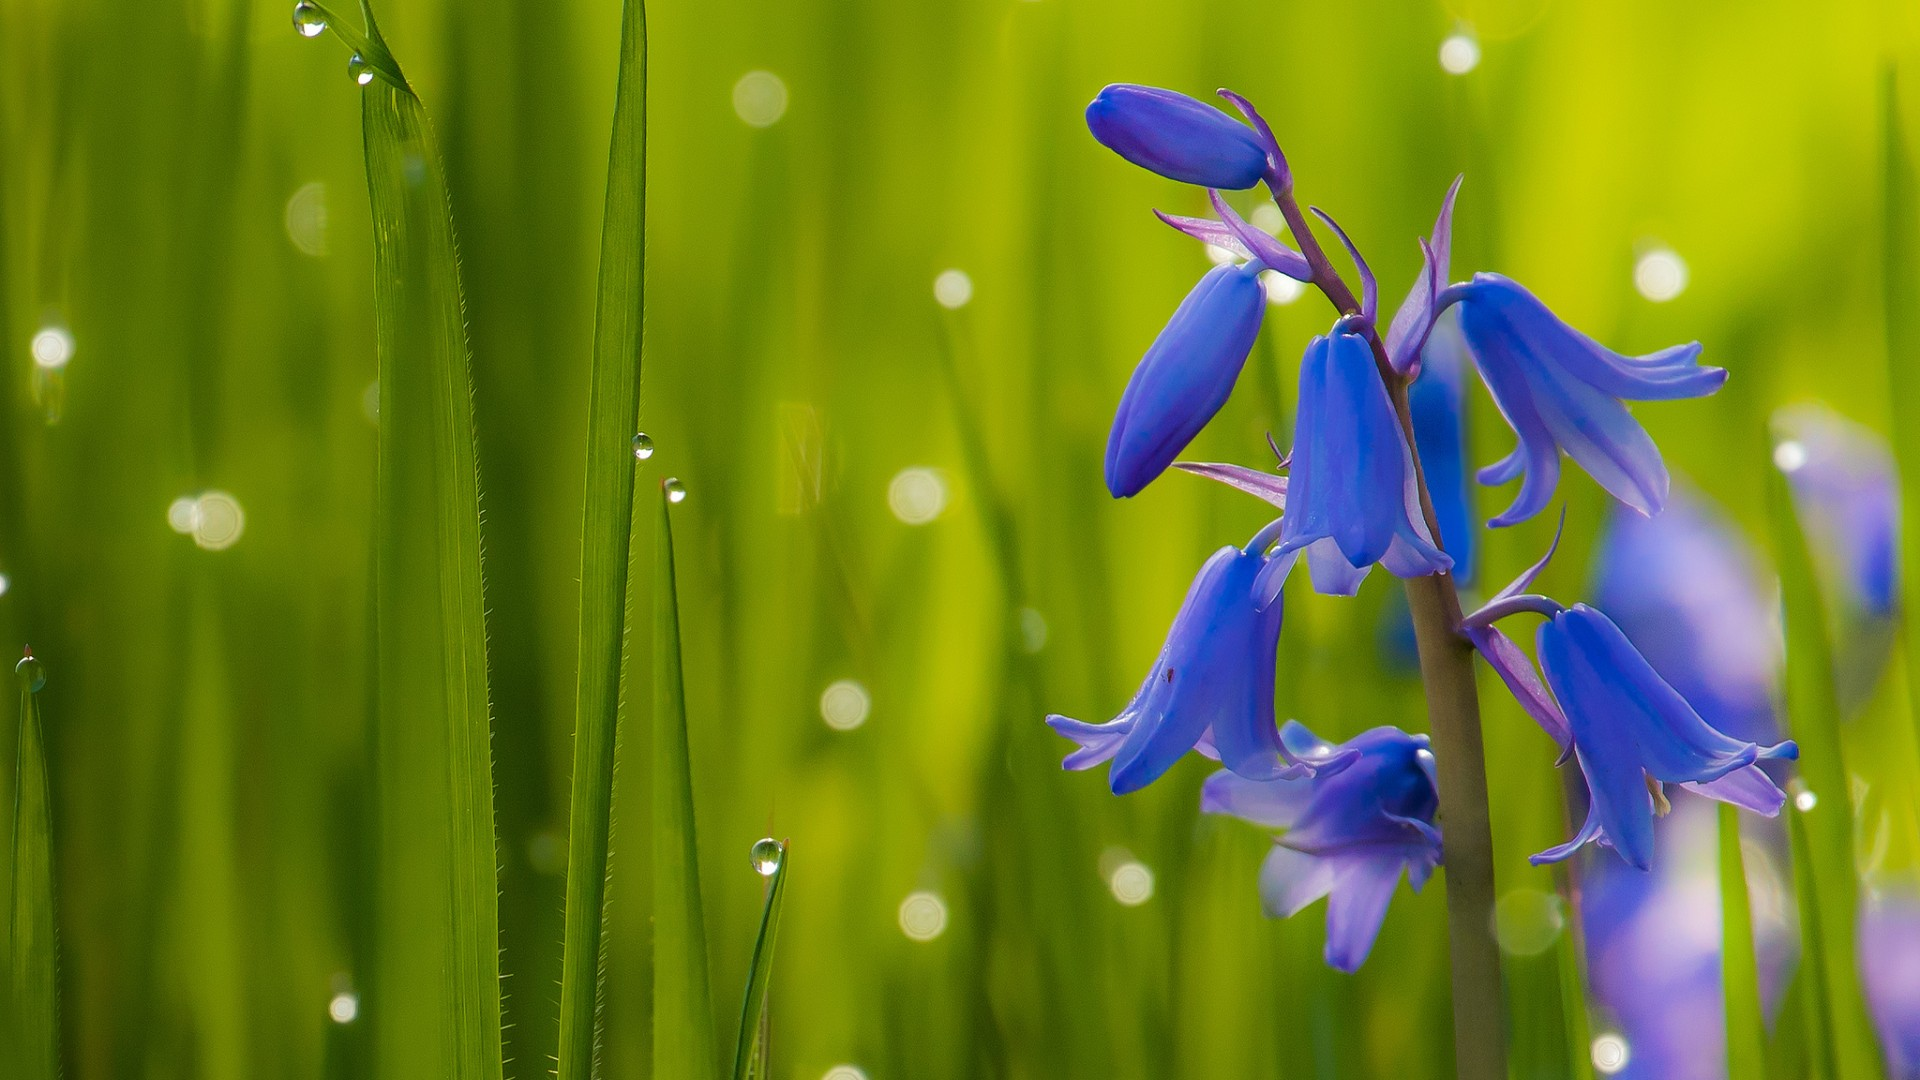 bluebell-flower-in-blades-of-grass-on-sunny-day-with-selective-focus-on-flower-at-background-of-fiel